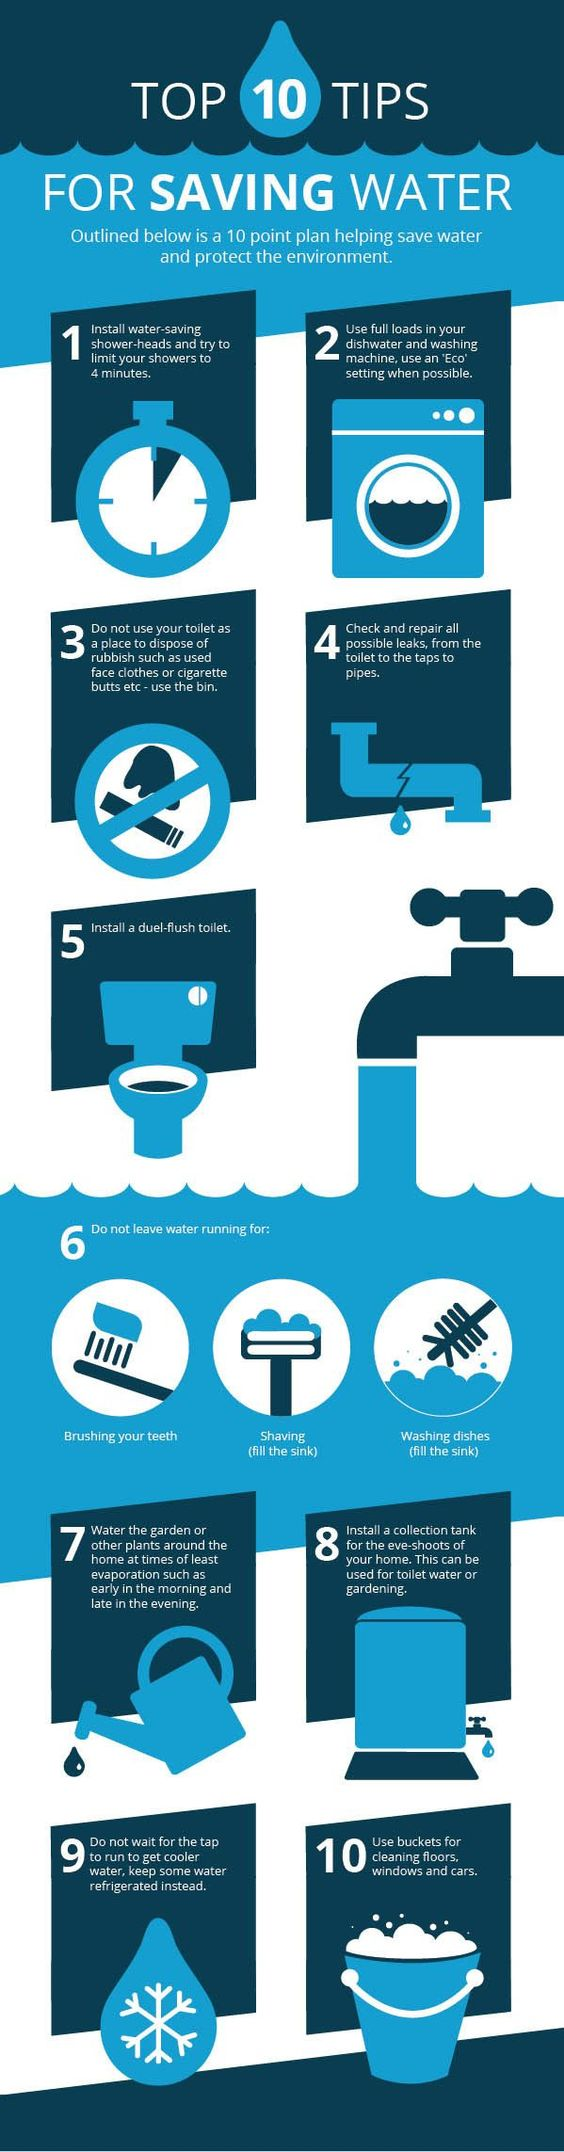 INFOGRAPHIC: 10 tips to save water in your home   Inhabitat - Sustainable Design Innovation, Eco Architecture, Green Building